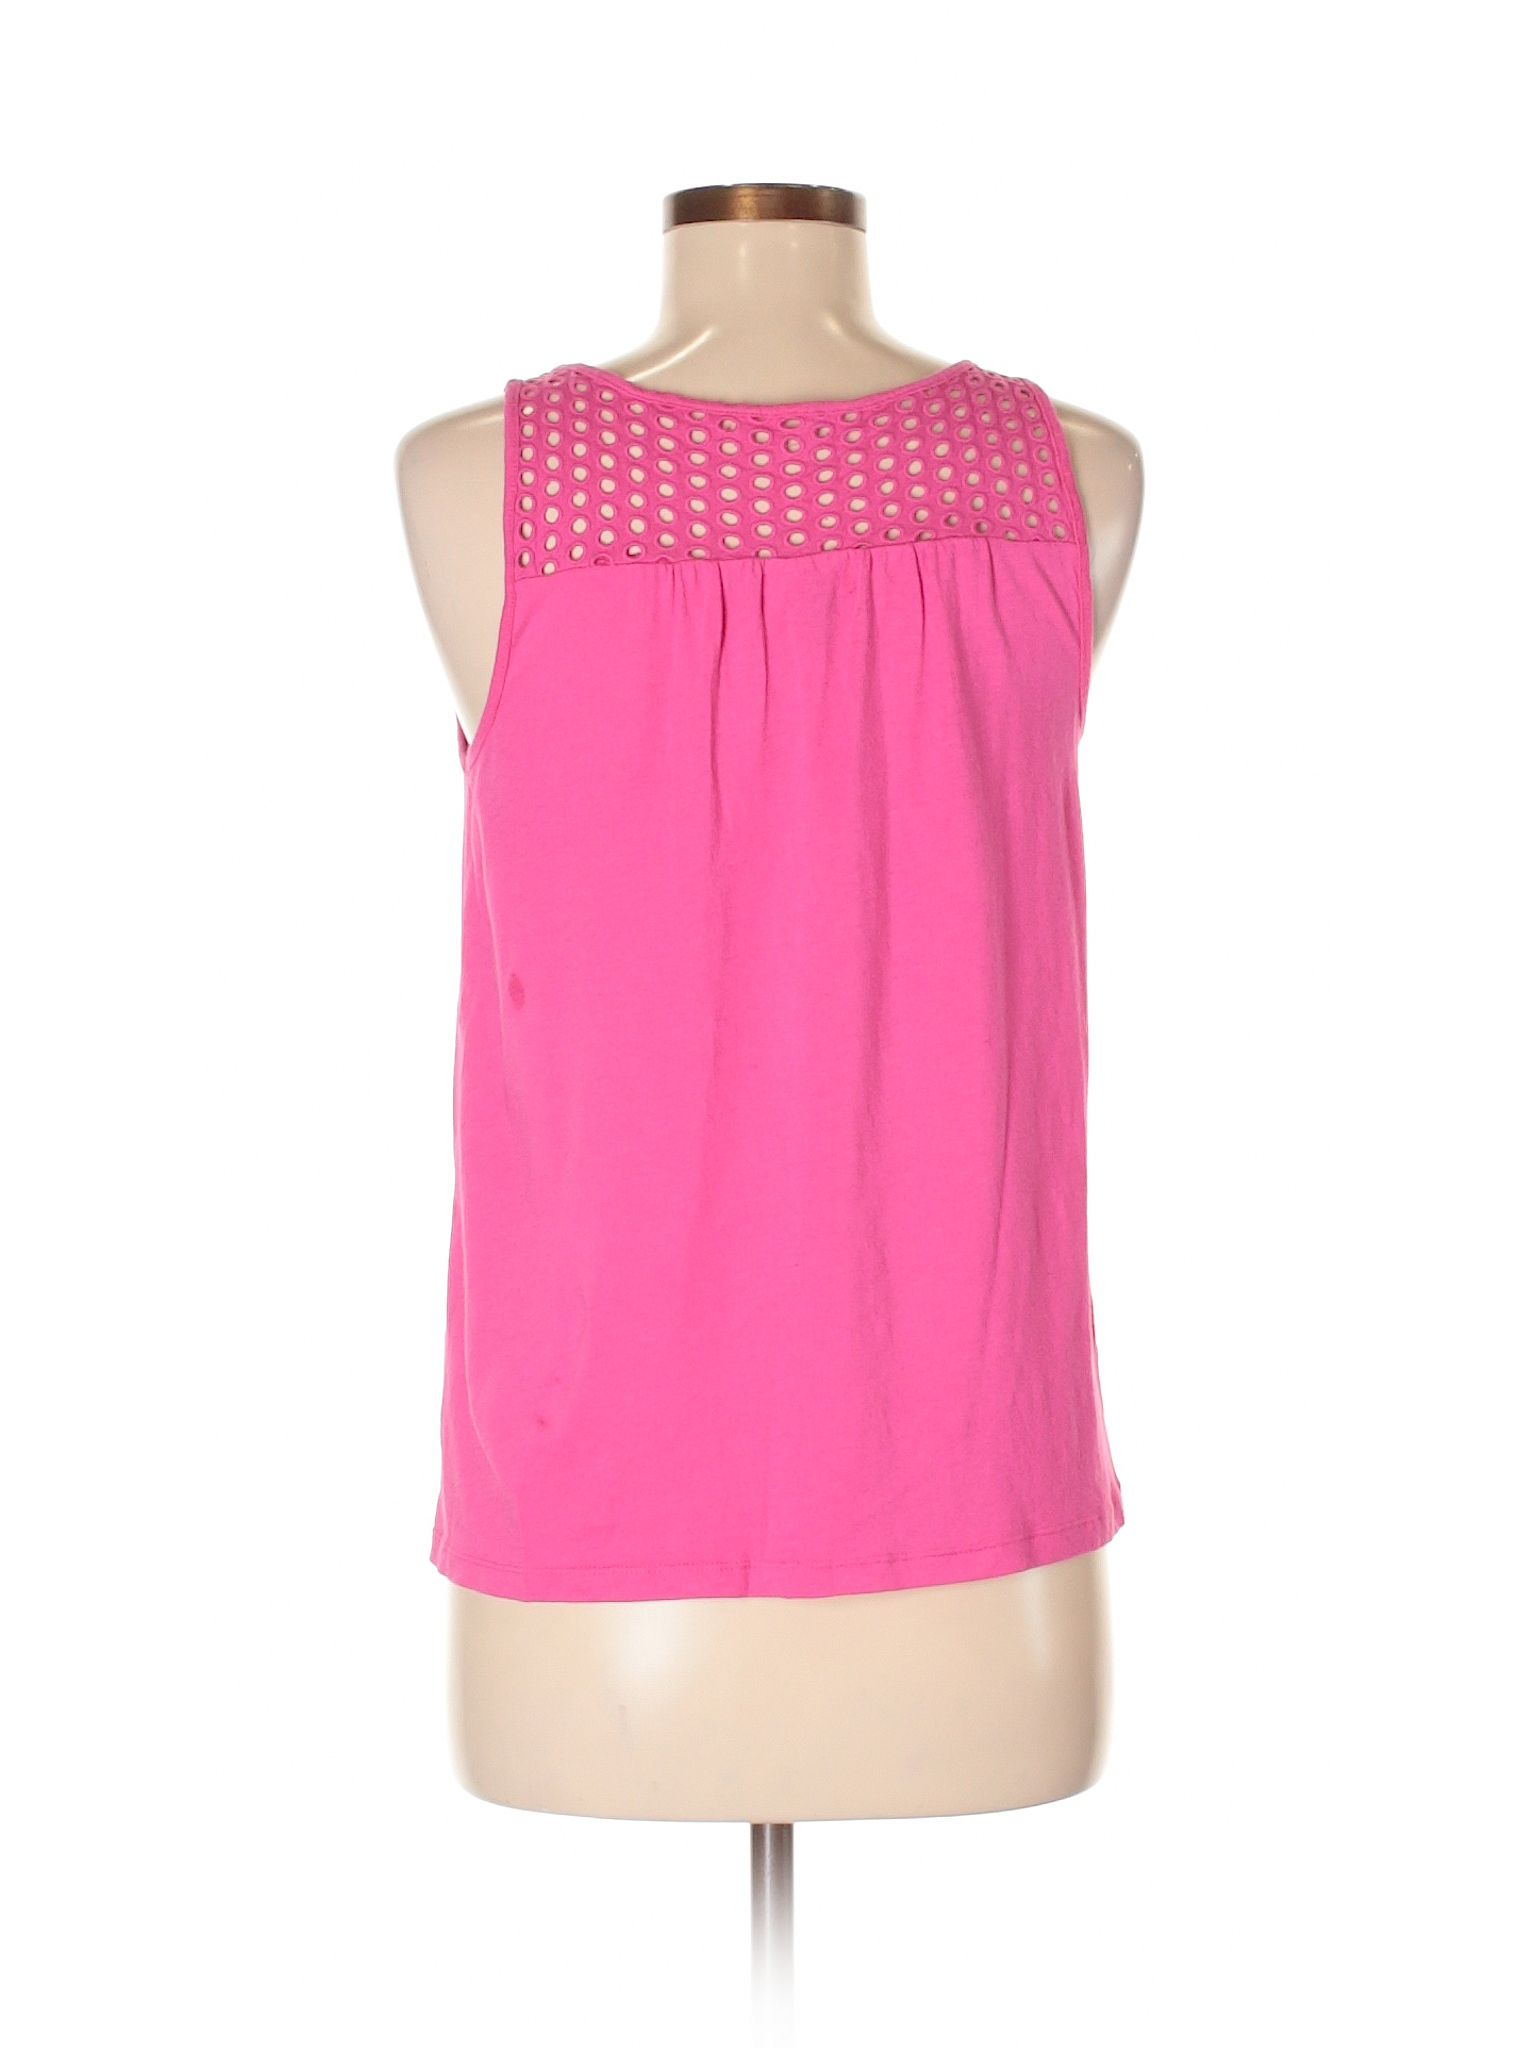 33bf217ca9a40 Old Navy Sleeveless Top  Size 4.00 Pink Women s Tops -  10.99